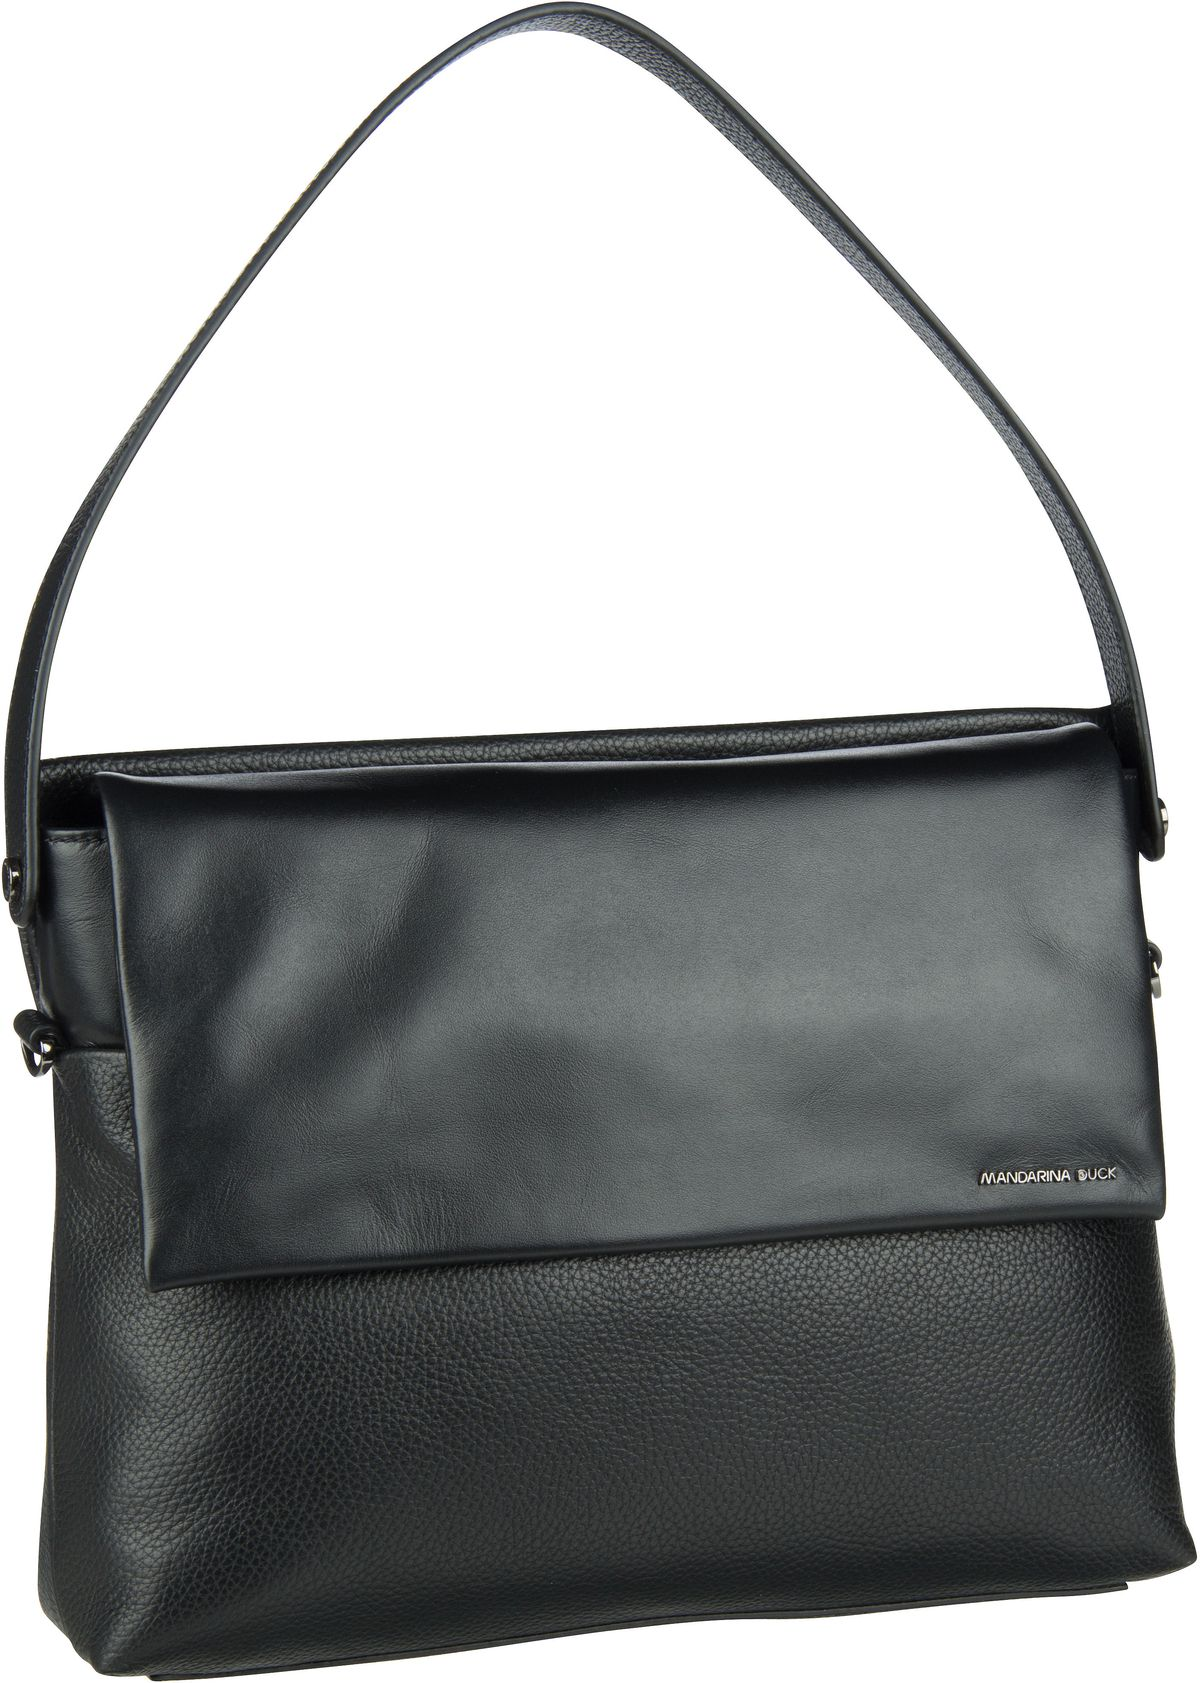 Handtasche Athena Shoulder Bag UPT13 Black